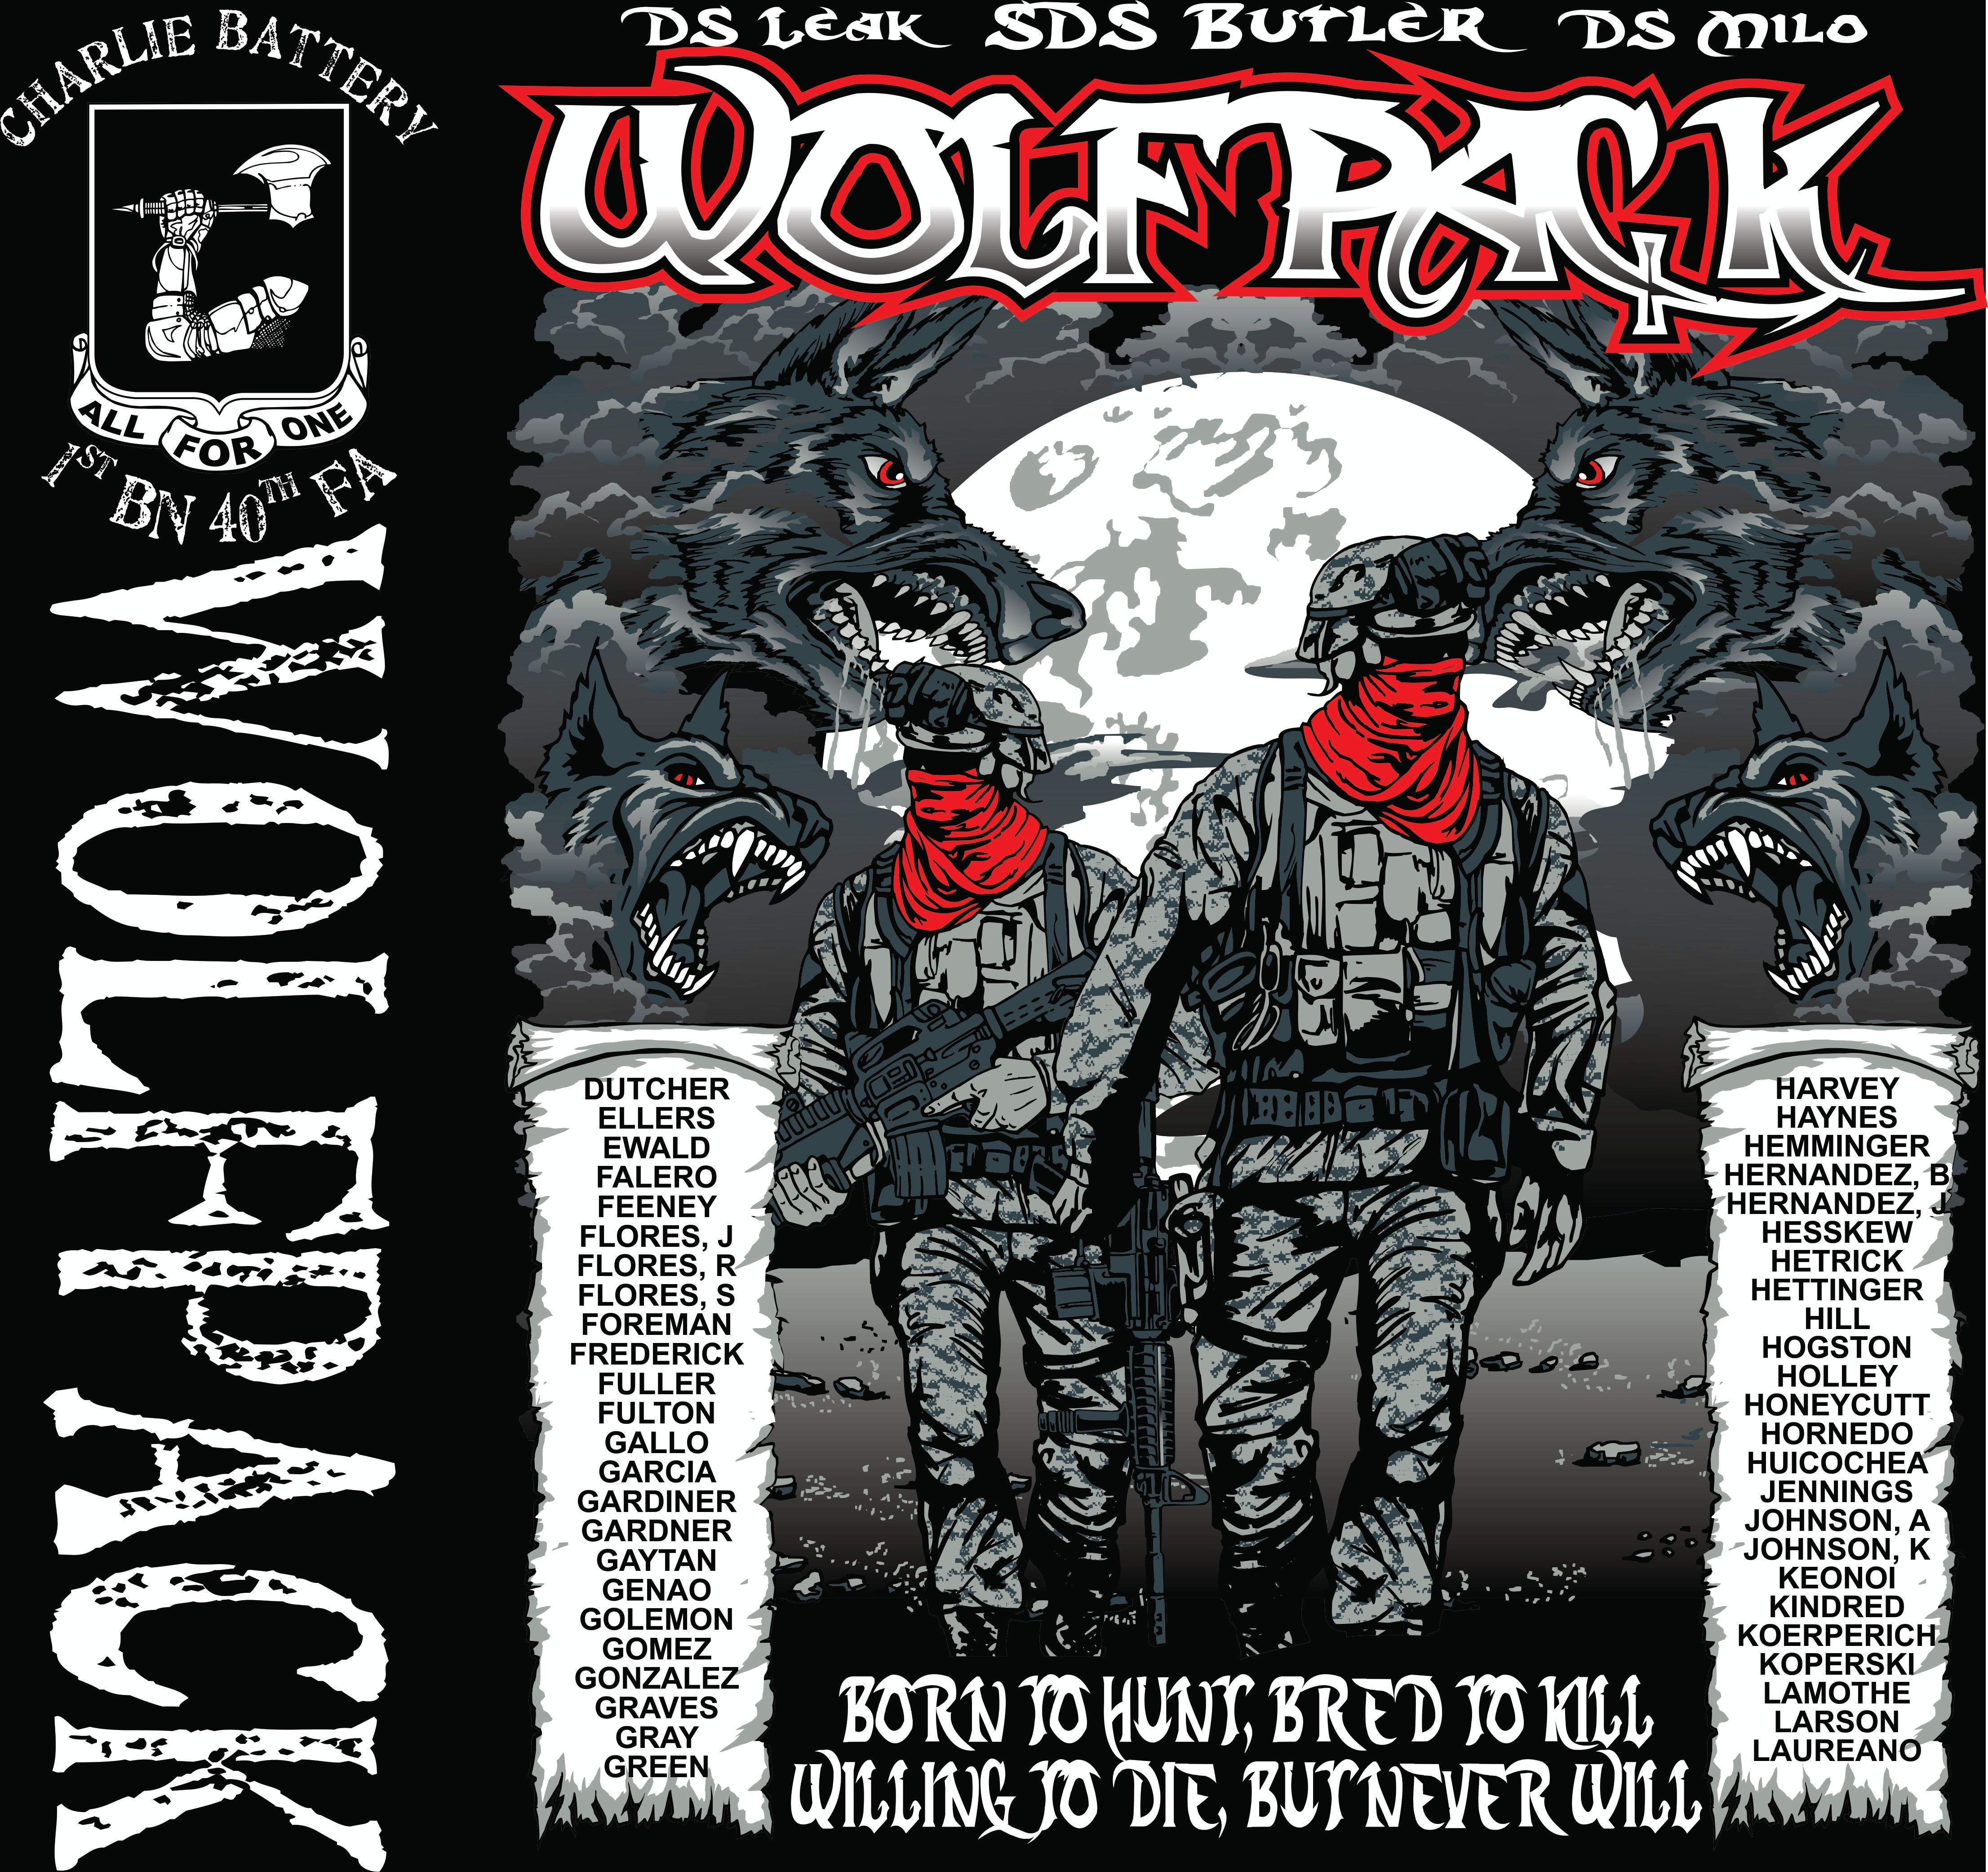 Platoon Shirts (2nd generation print) CHARLIE 1st 40th WOLFPACK SEPT 2018